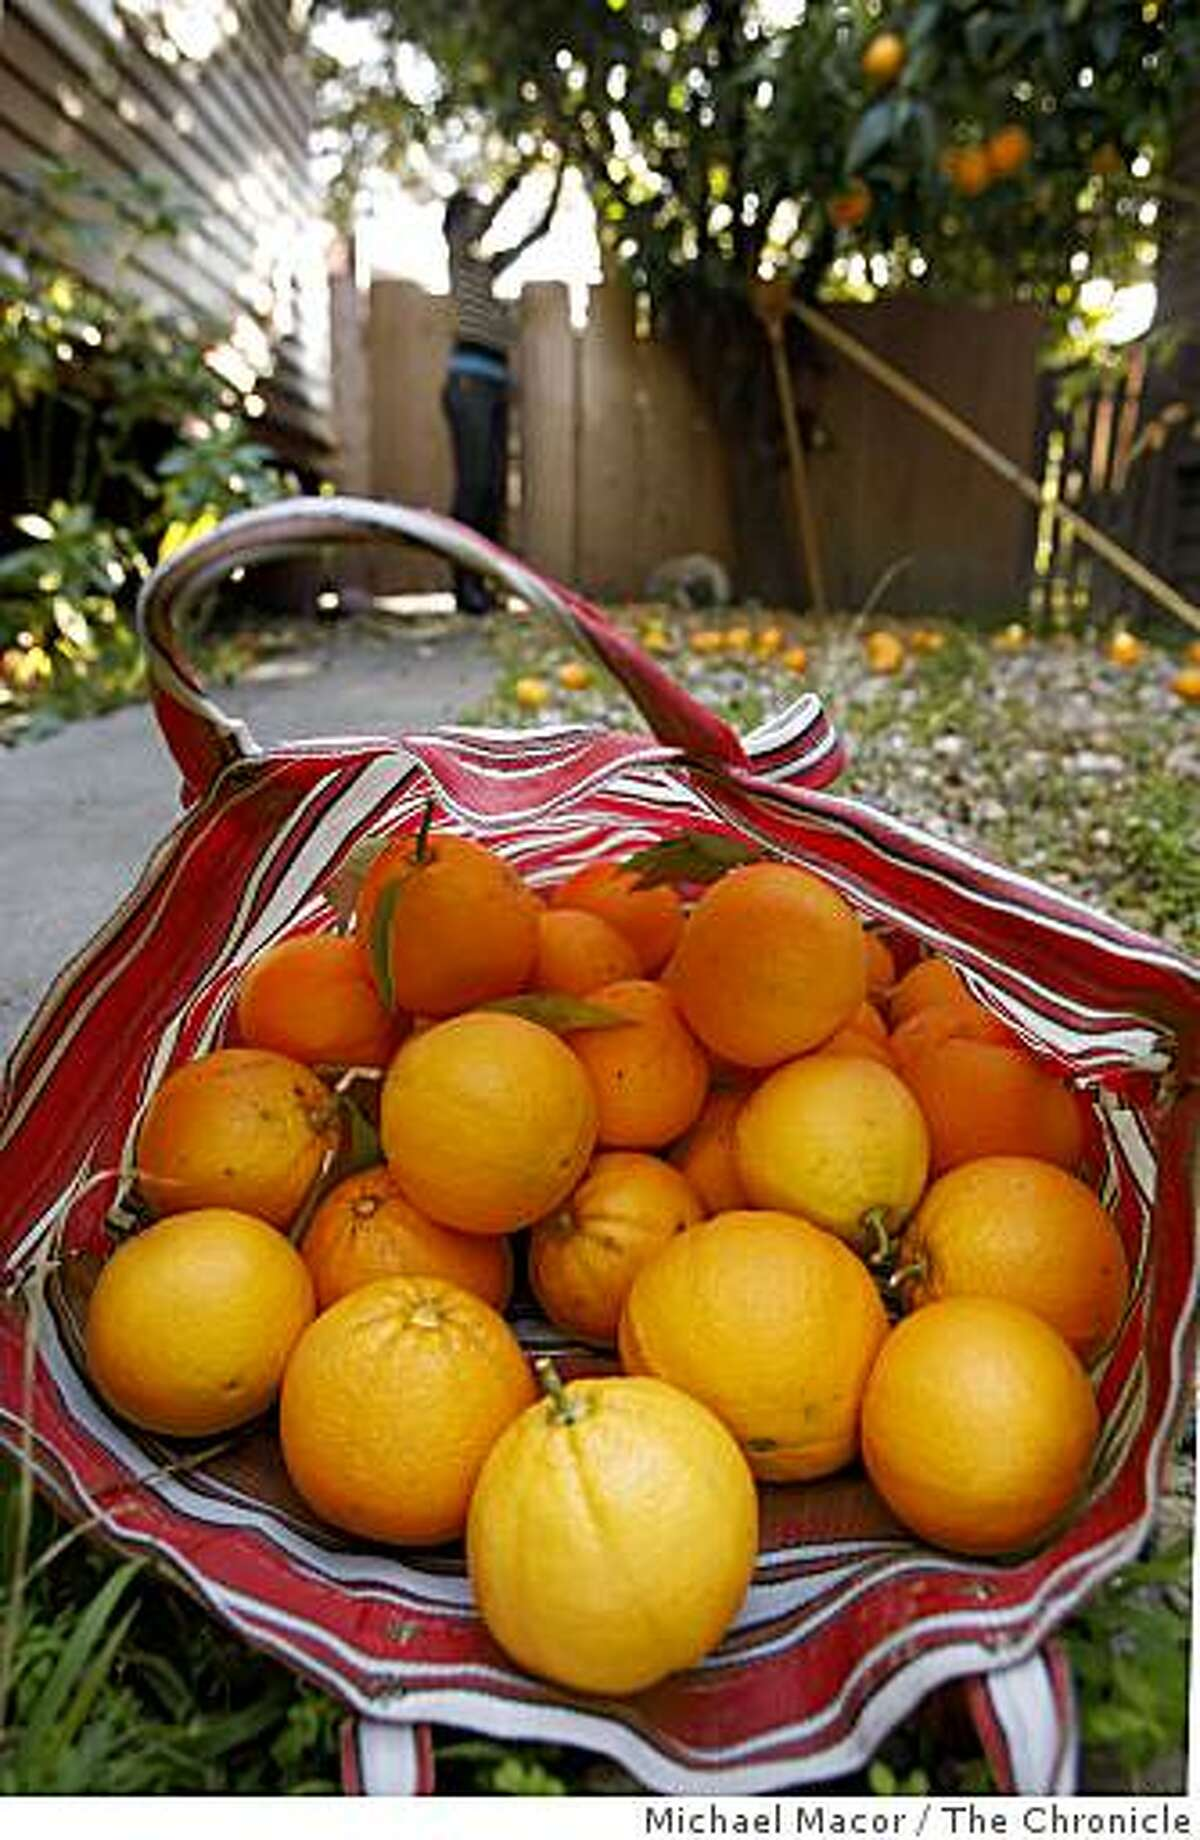 Asiya Wadud, gathers bags of fruit from trees on the side yard of a home in the Rockridge area of Berkeley, Calif., on Friday Jan. 30, 2008, after checking with the owners of the home, of course.